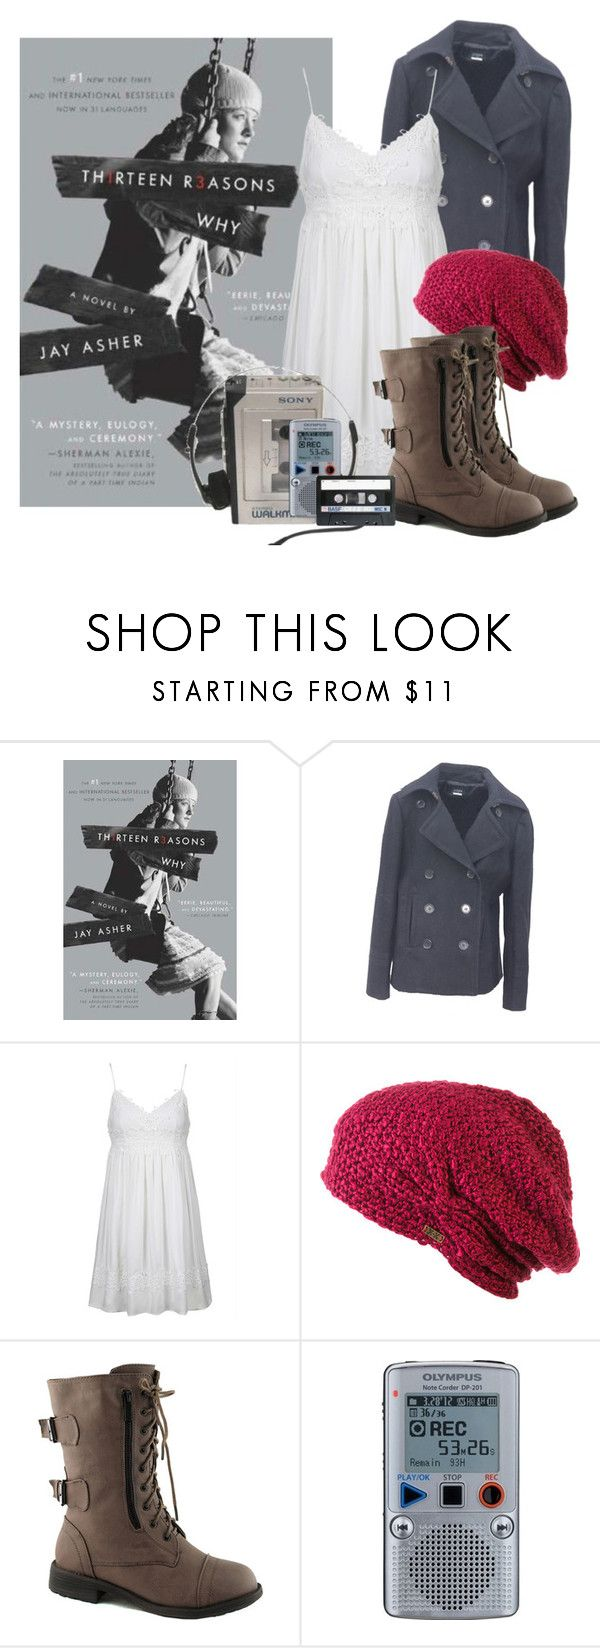 Thirteen Reasons Why - Jay Asher by macmgryffindor on Polyvore featuring Topshop, J.Crew, Top Moda and Krochet Kids